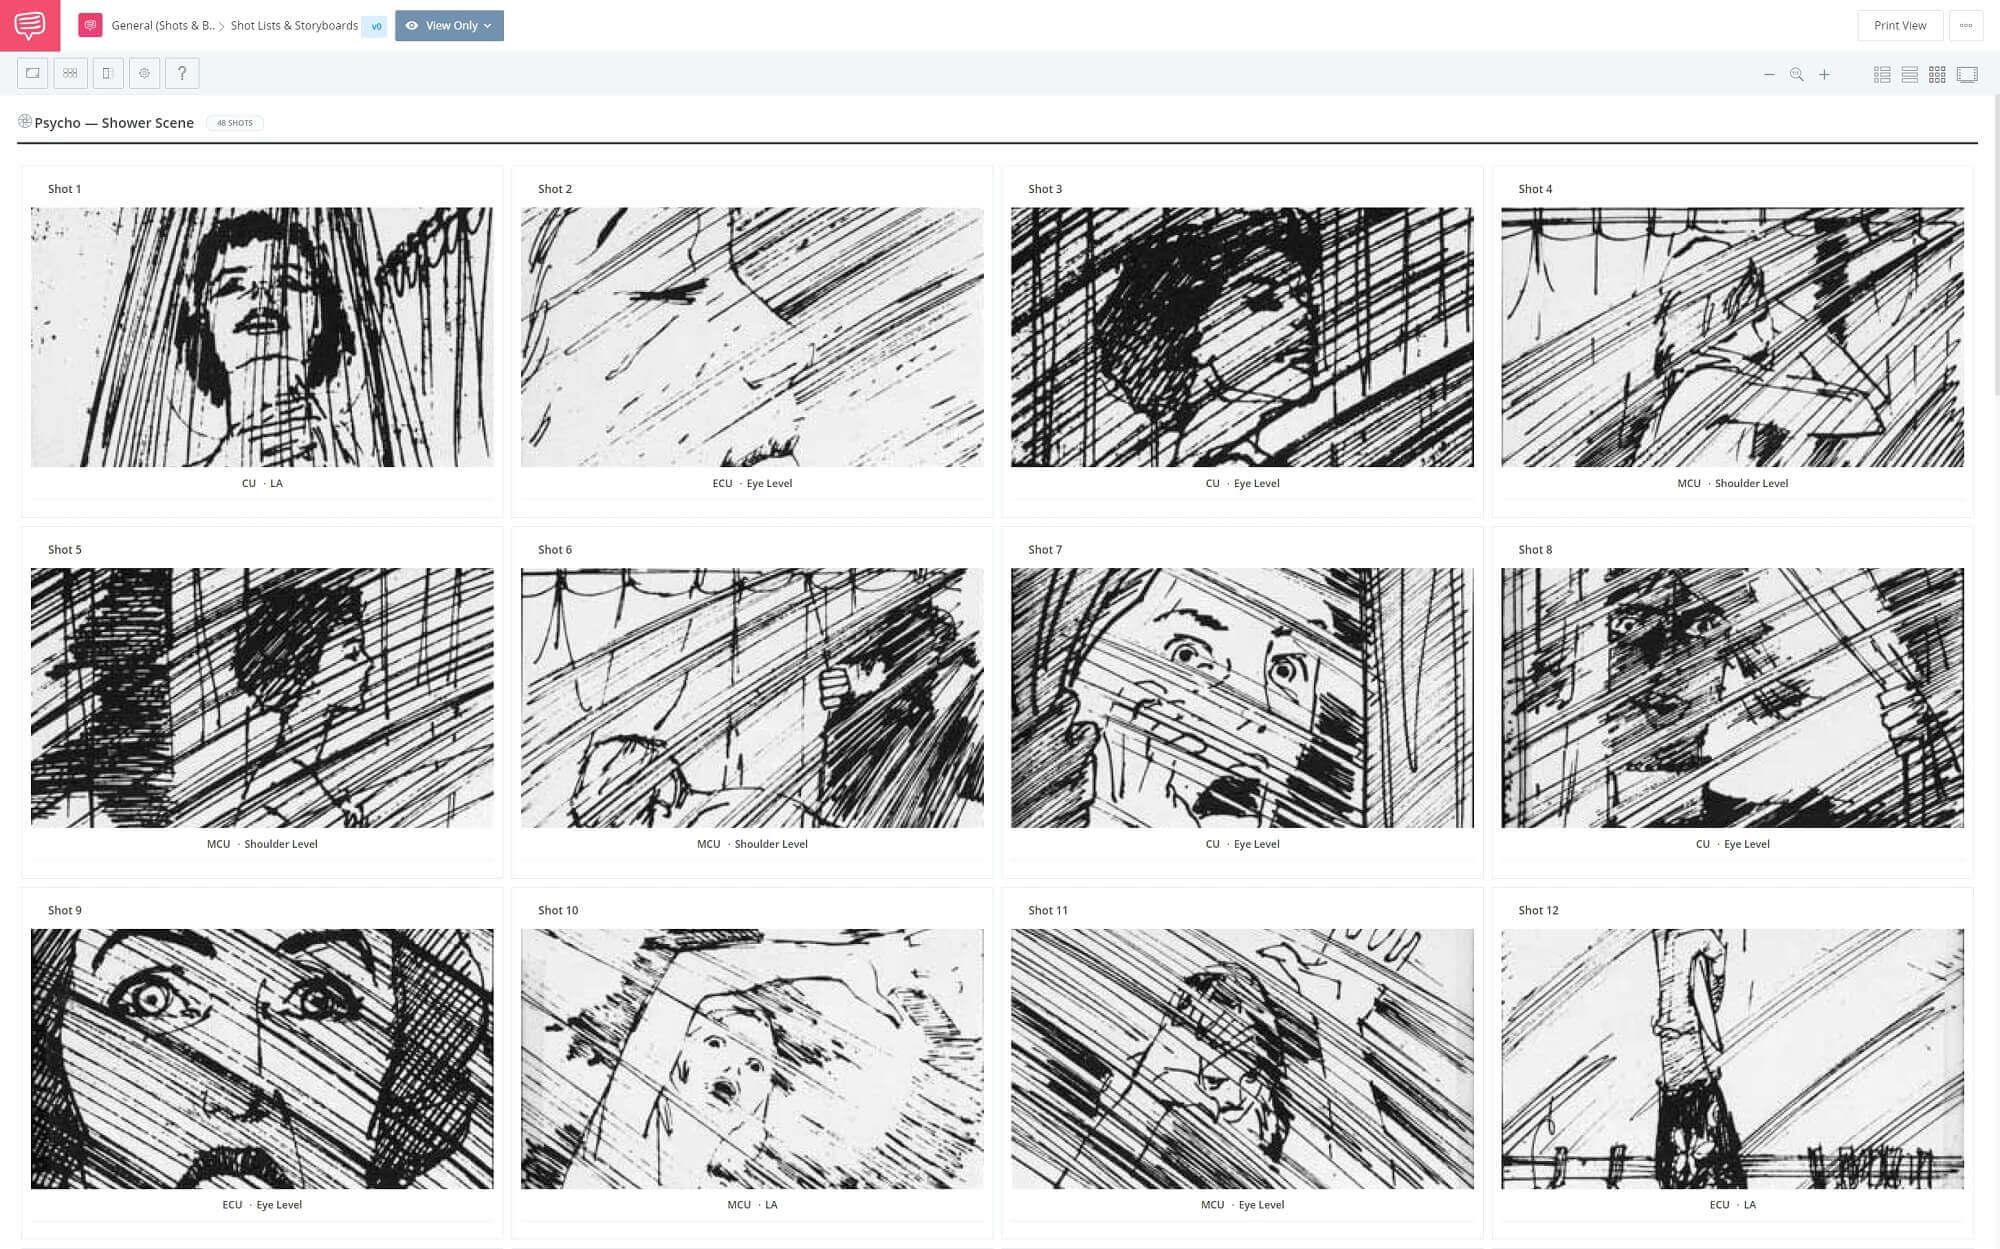 Film Storyboard Example - Psycho Storyboard - StudioBinder Storyboarding Software